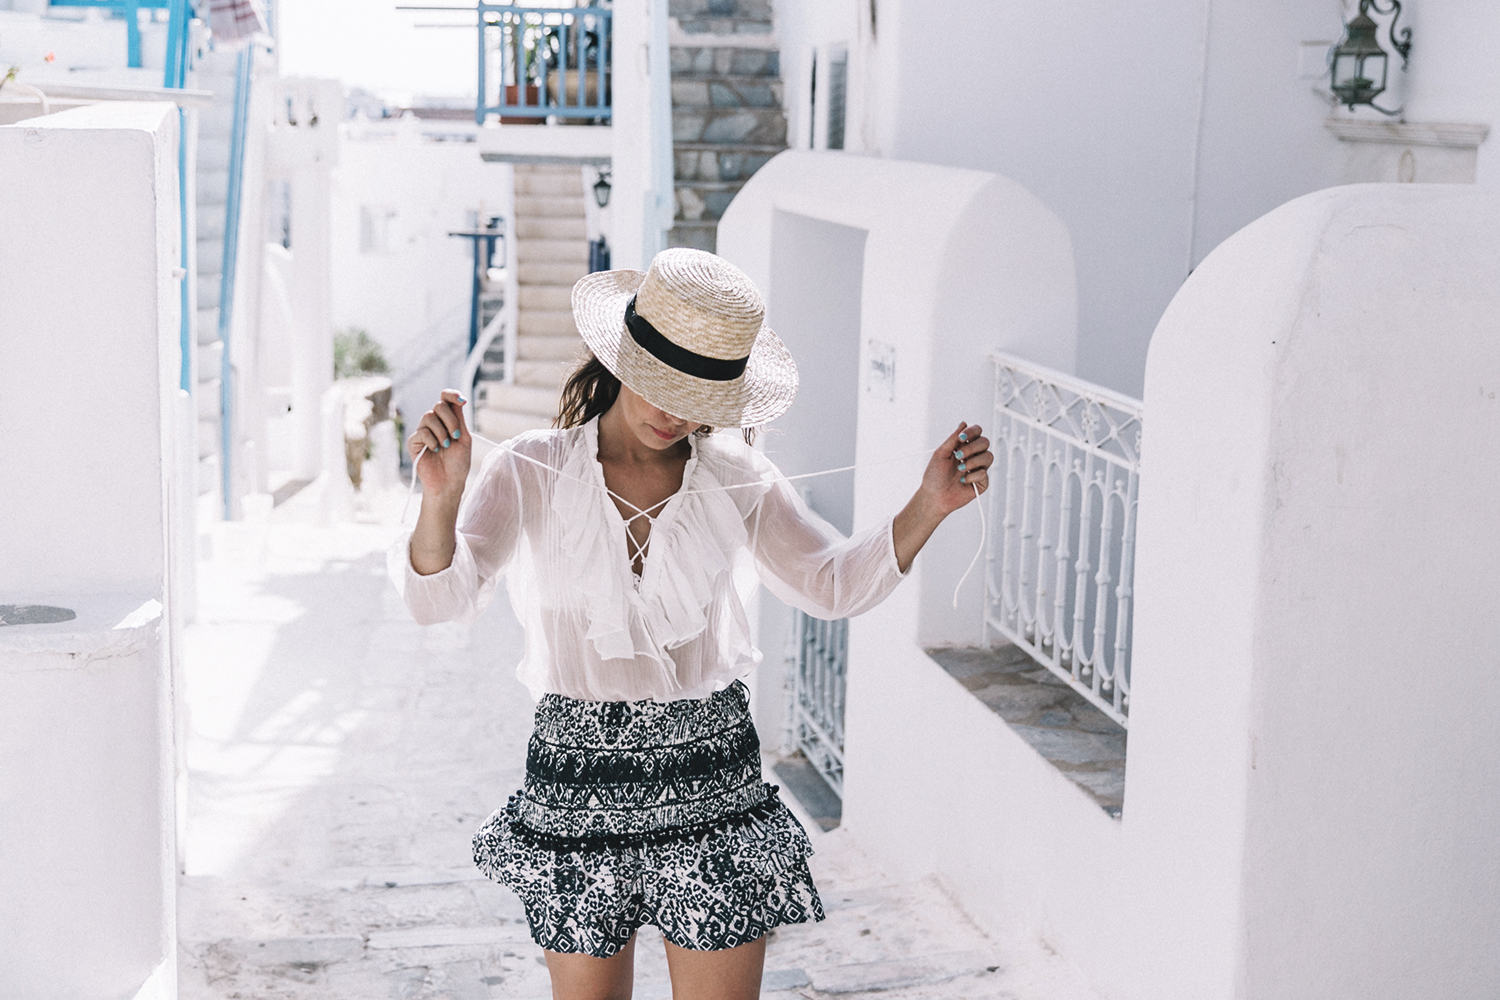 Lace_up_Blouse-Ralph_Lauren-Soludos_Espadrilles-Soludos_Escapes-Skirt-Straw_Hat-Canotier-Lack_Of_Color-Street_Style-Mykonos-Greece-Collage_Vintage-69